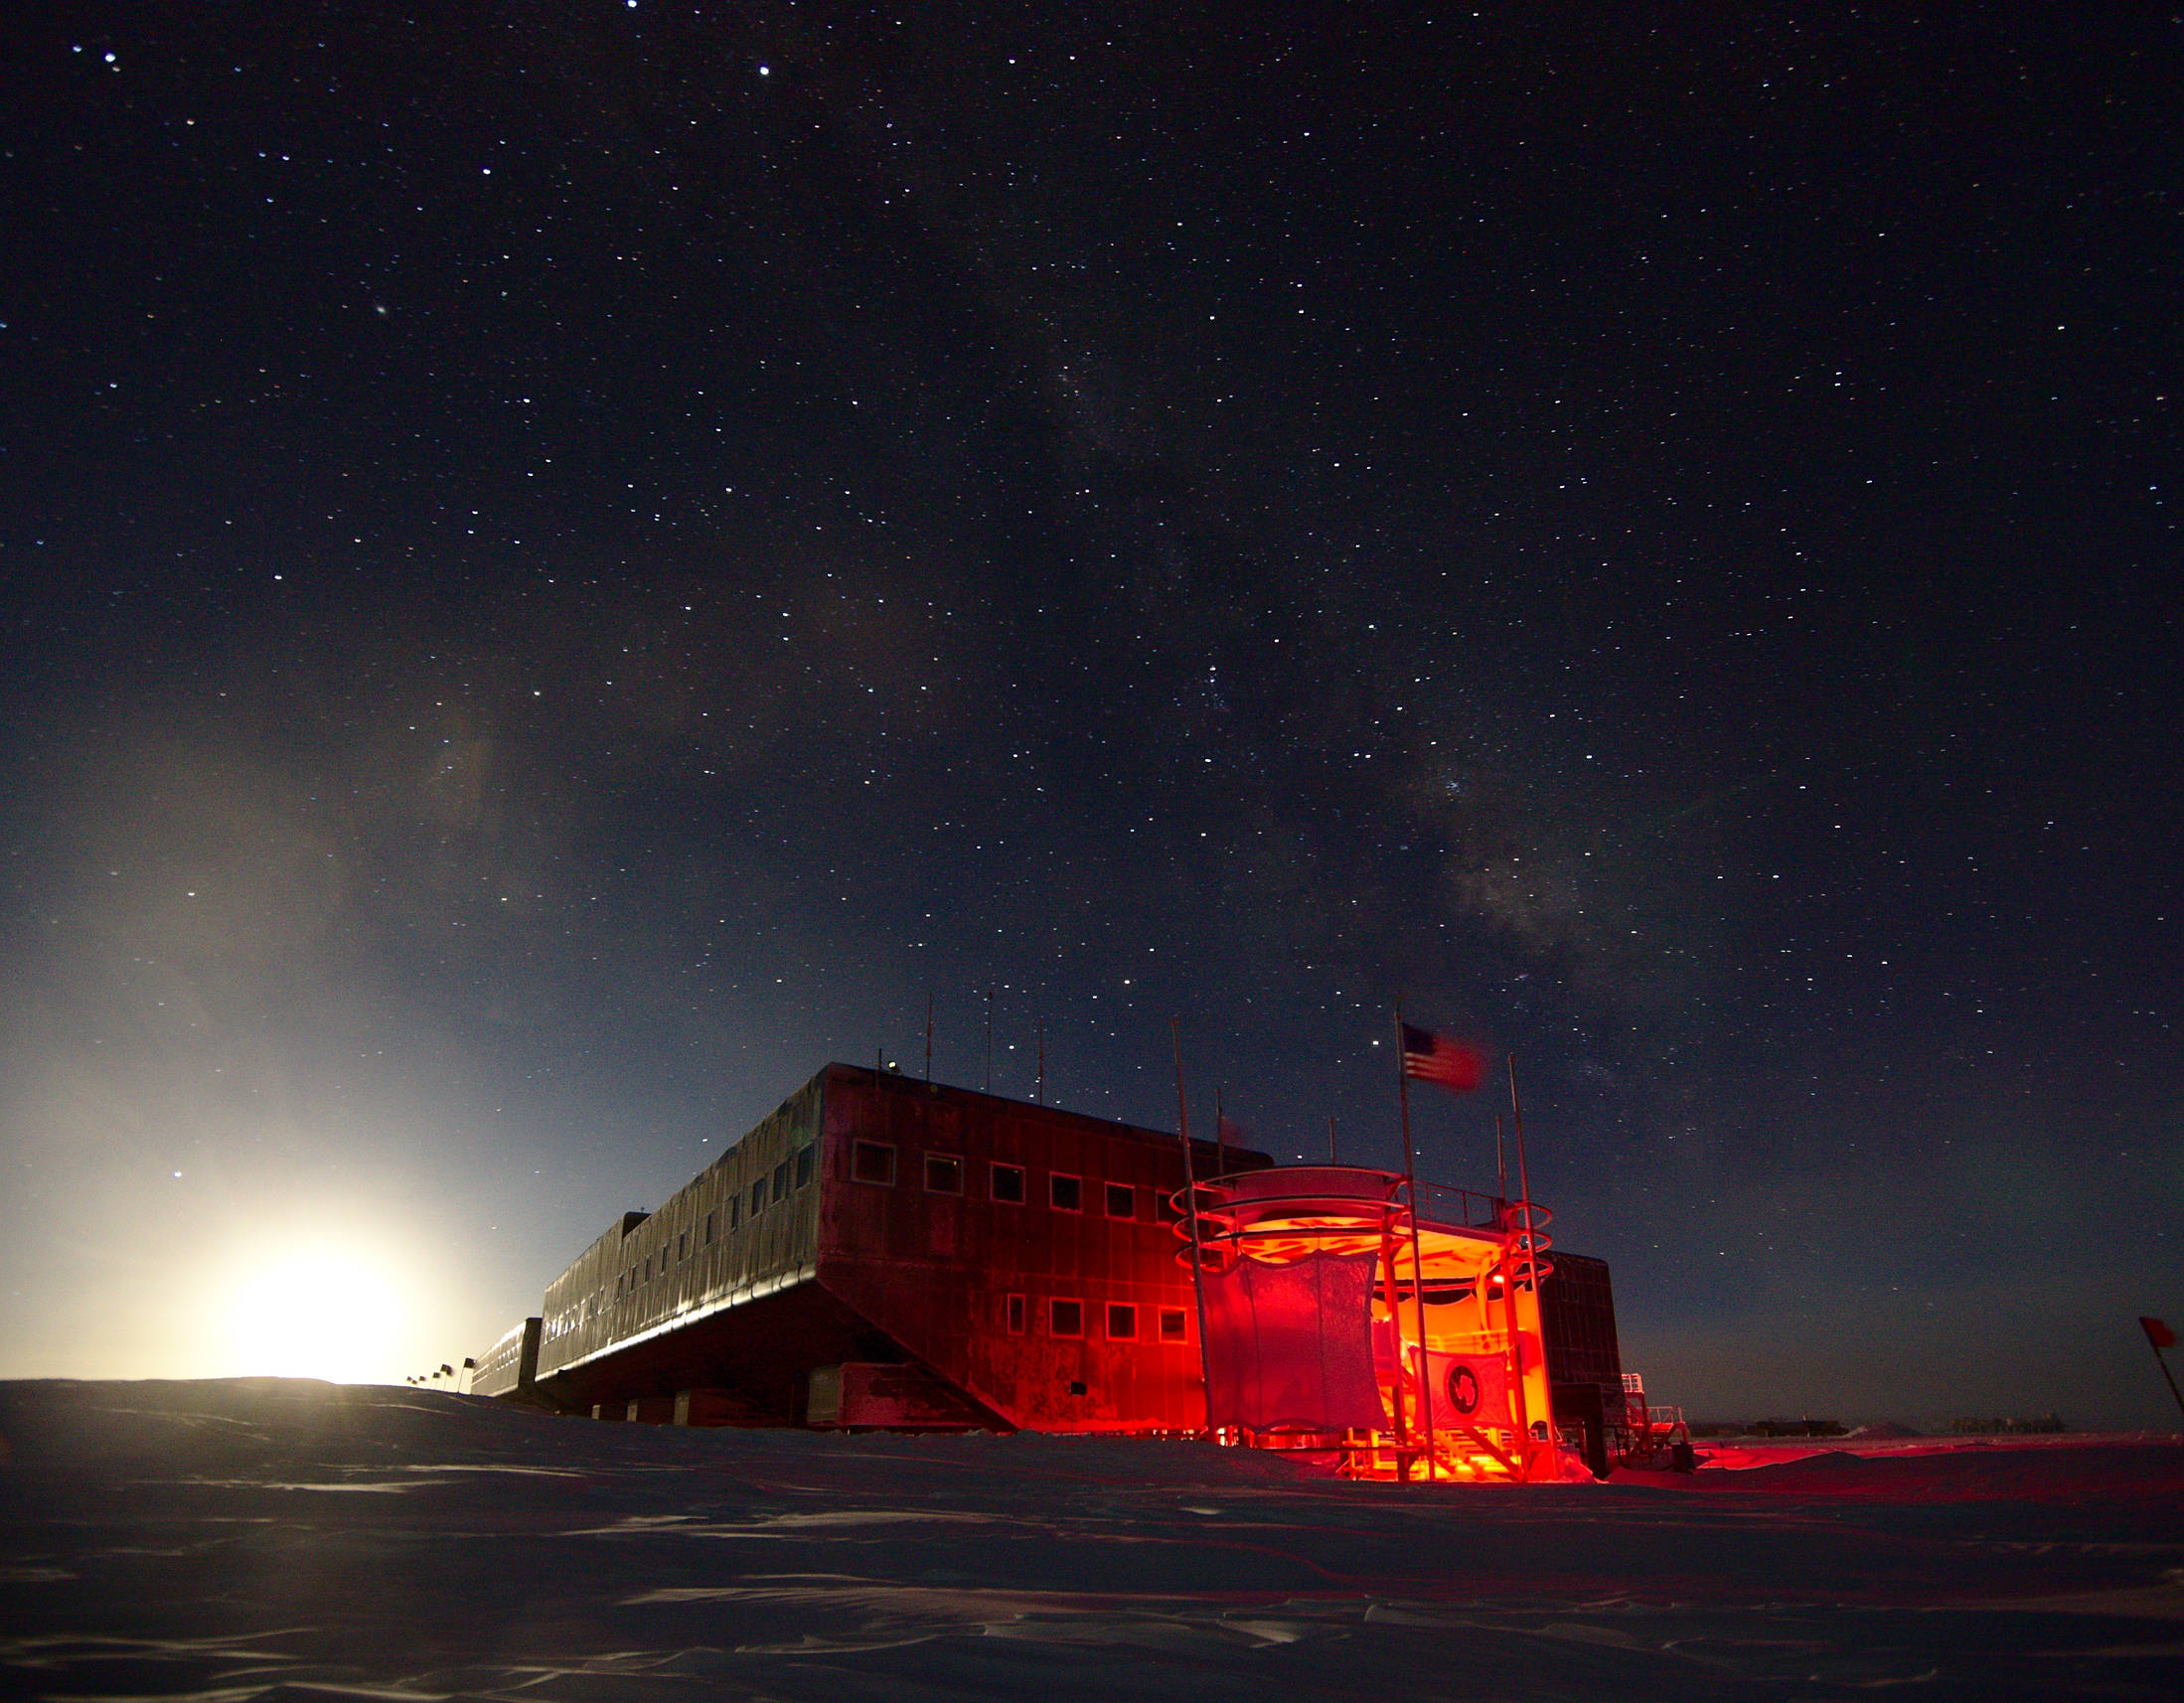 The entrance to the Amundsen-Scott research station. The bright light of the Moon illuminates the side of the station